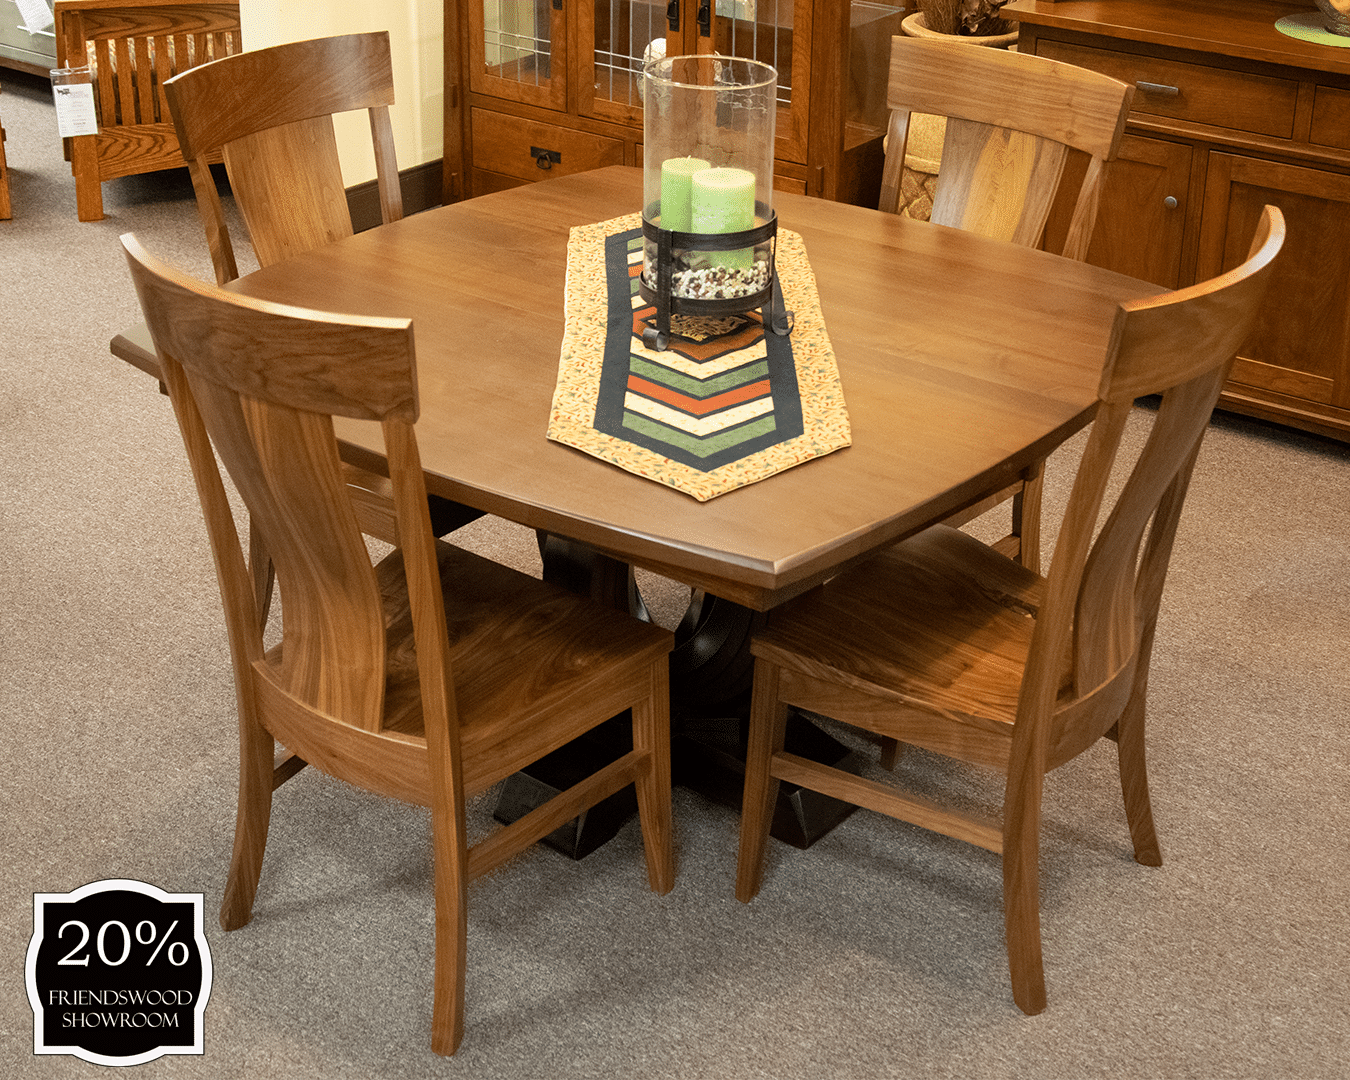 Outstanding Saratoga Single Pedestal Table And Chairs Set Cjindustries Chair Design For Home Cjindustriesco